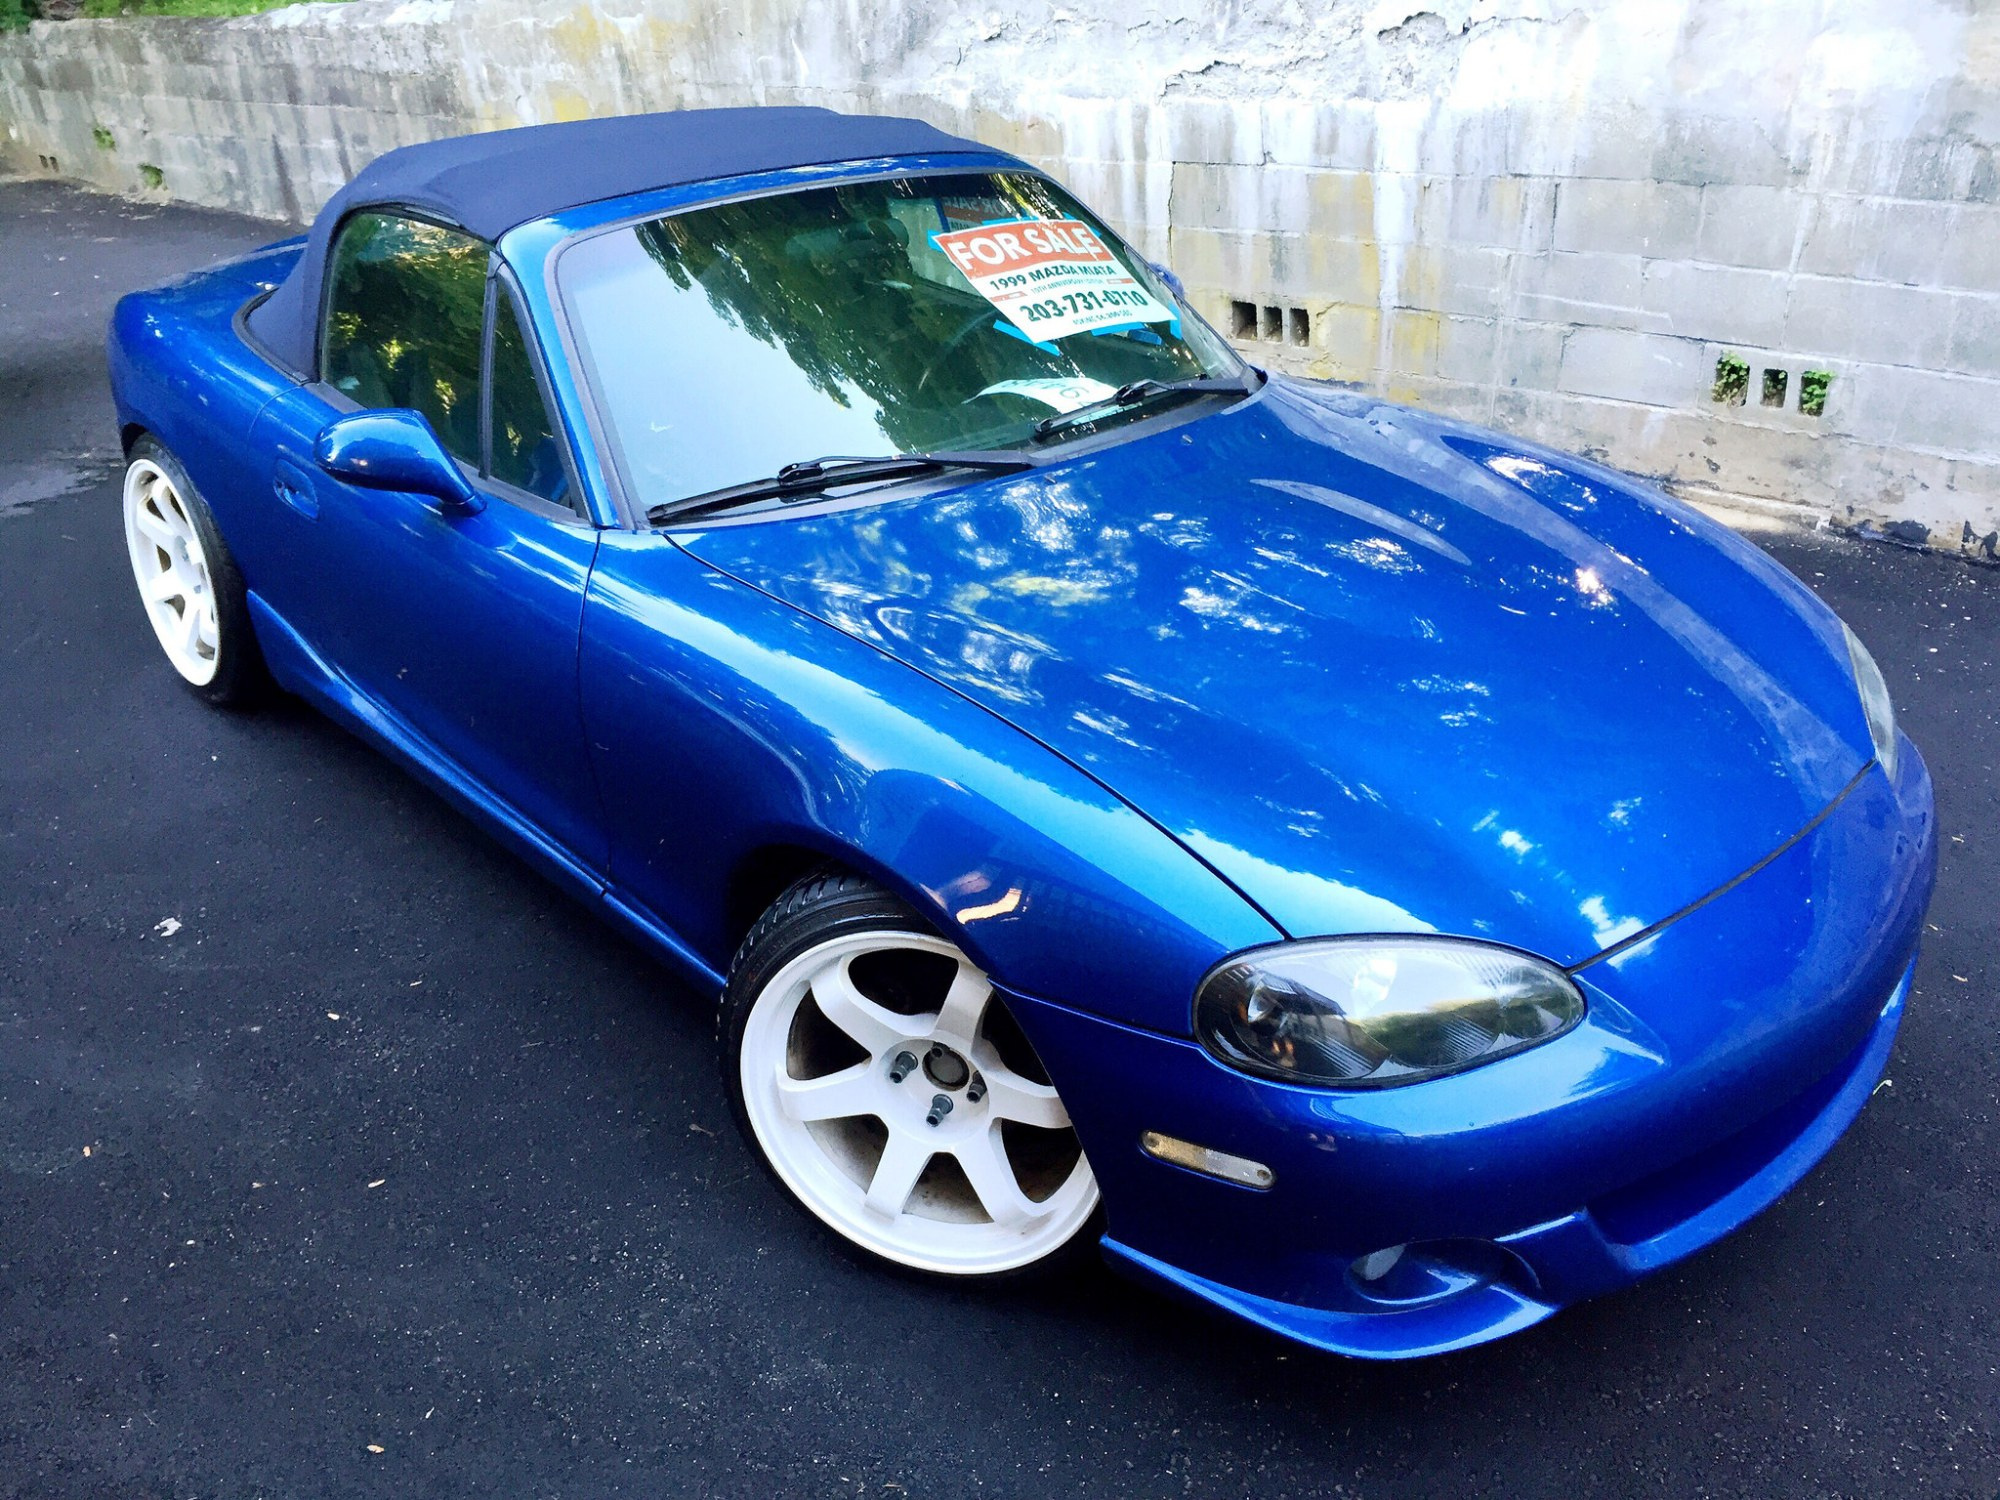 hight resolution of  ct 1999 mazda miata 10th anniversary edition 00 18781921089 eb50c14bb5 k jpg